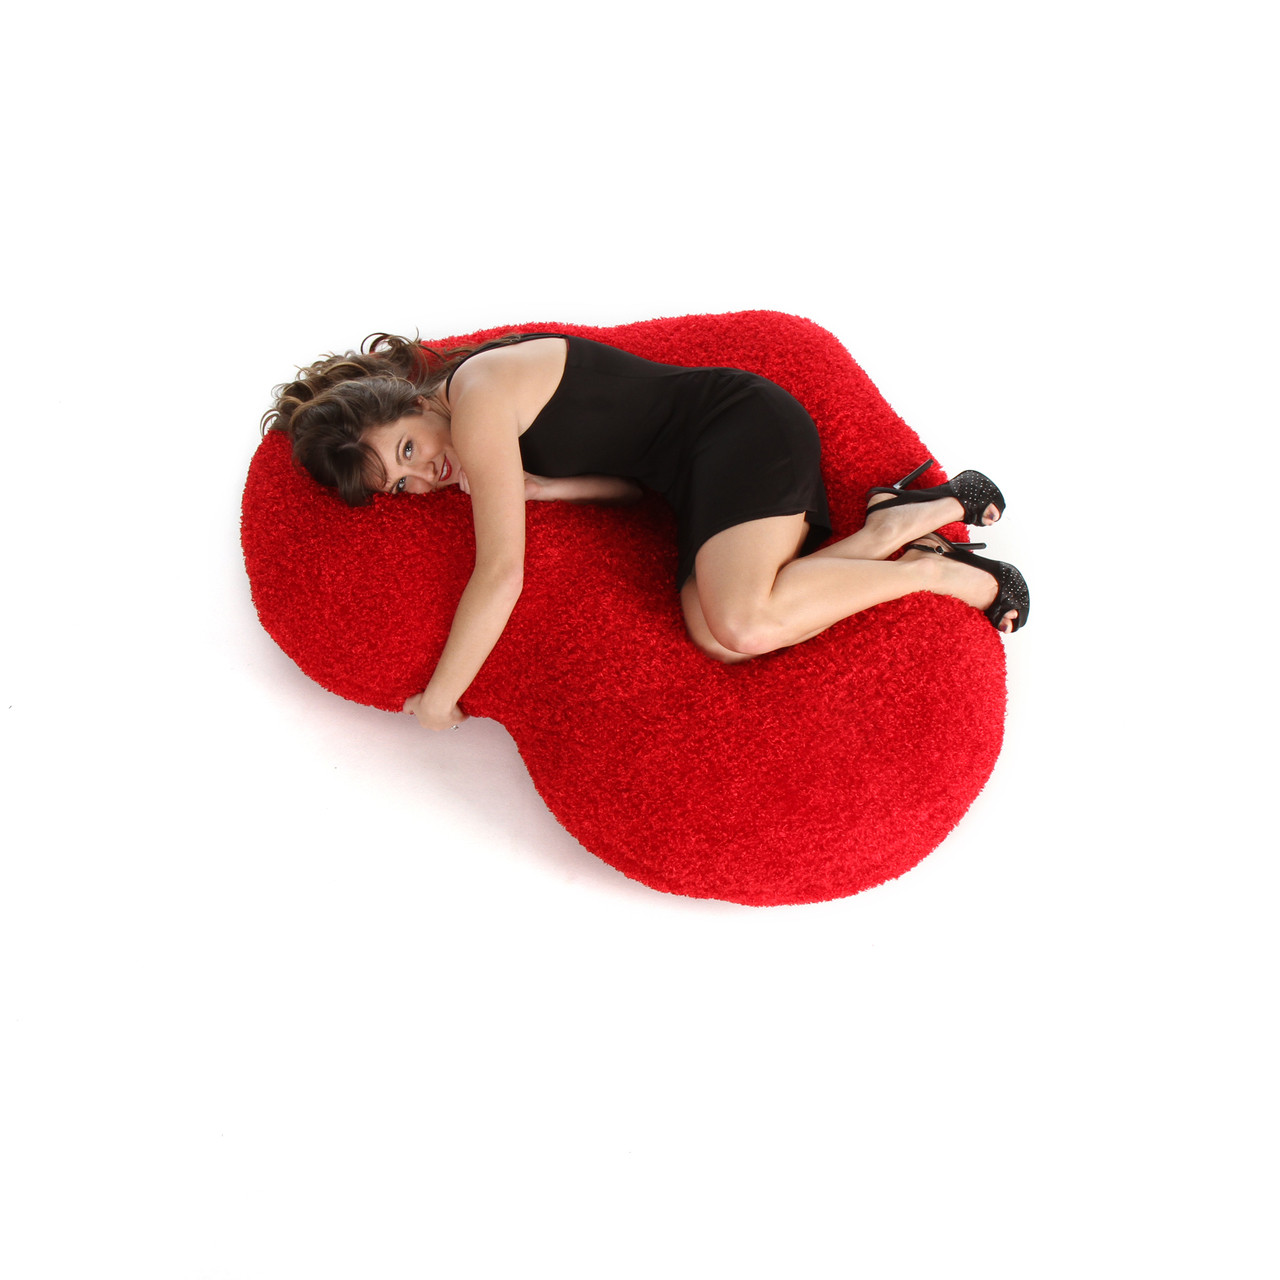 56in ginormous red heart body pillow for valentine s day from giant teddy